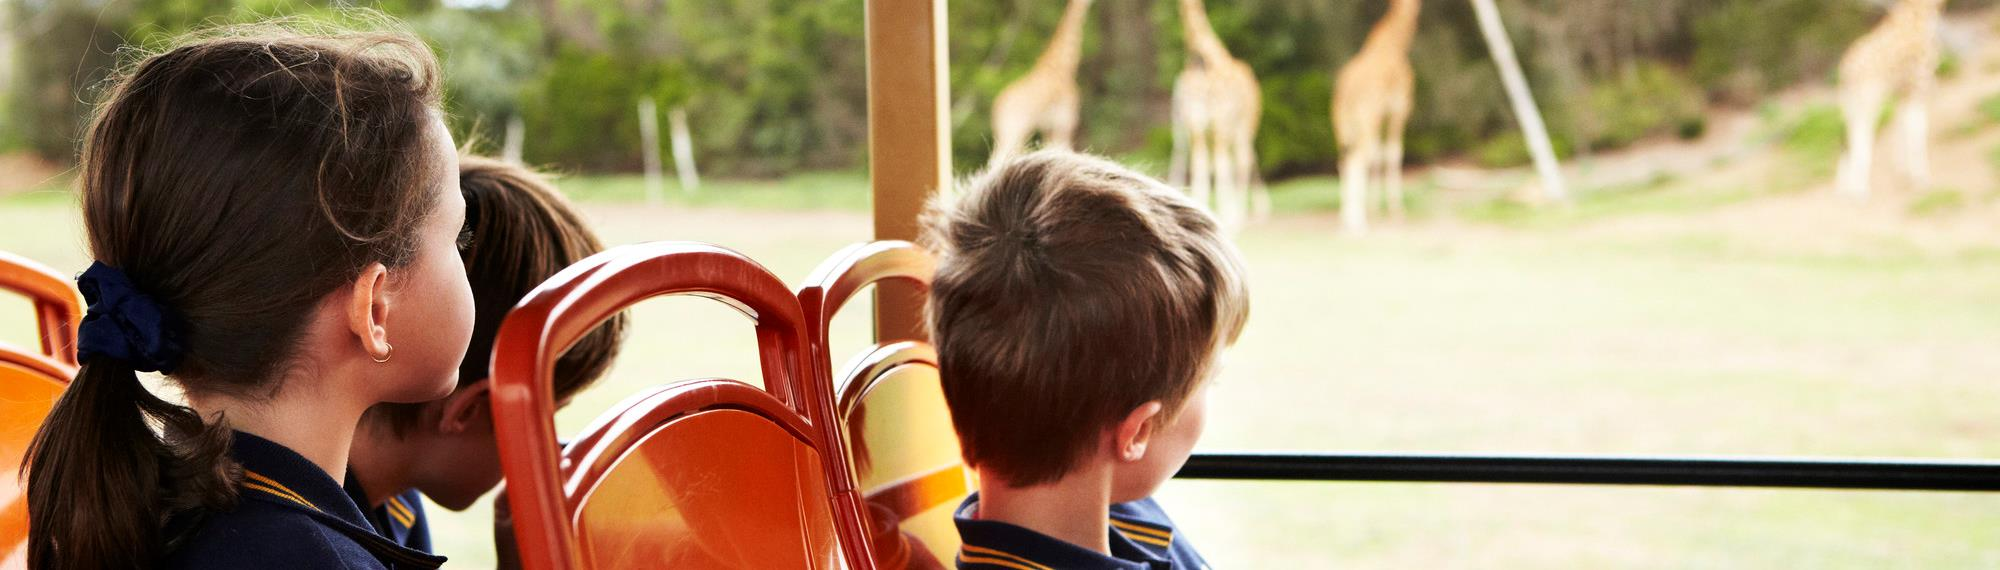 Students sitting on orange seats watching giraffes in the distance on the safari bus at Werribee Open Range Zoo.